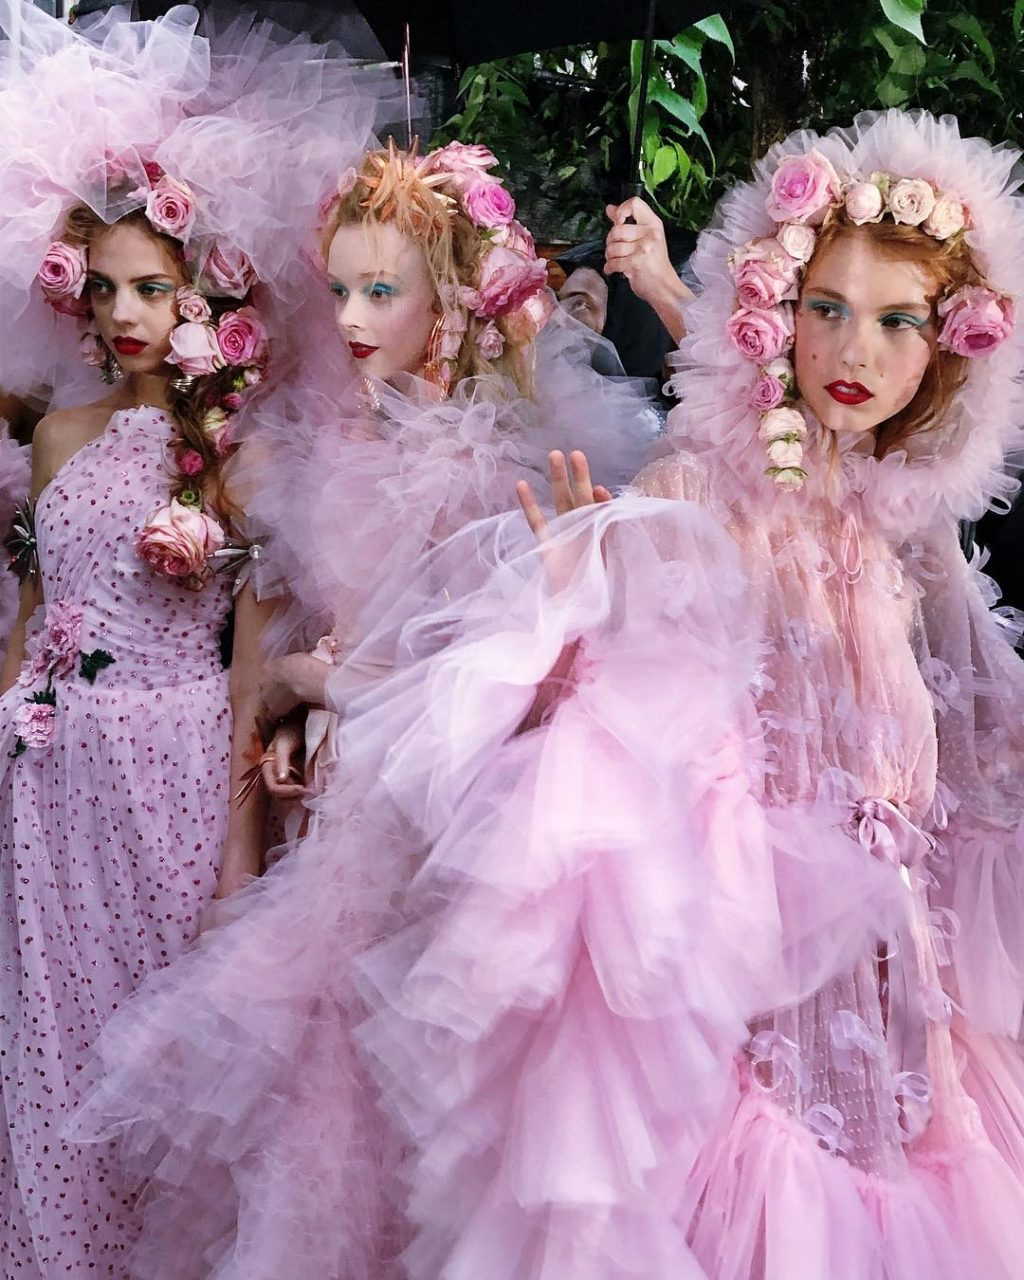 Beauty Looks at NYFW or Living Works of Art?